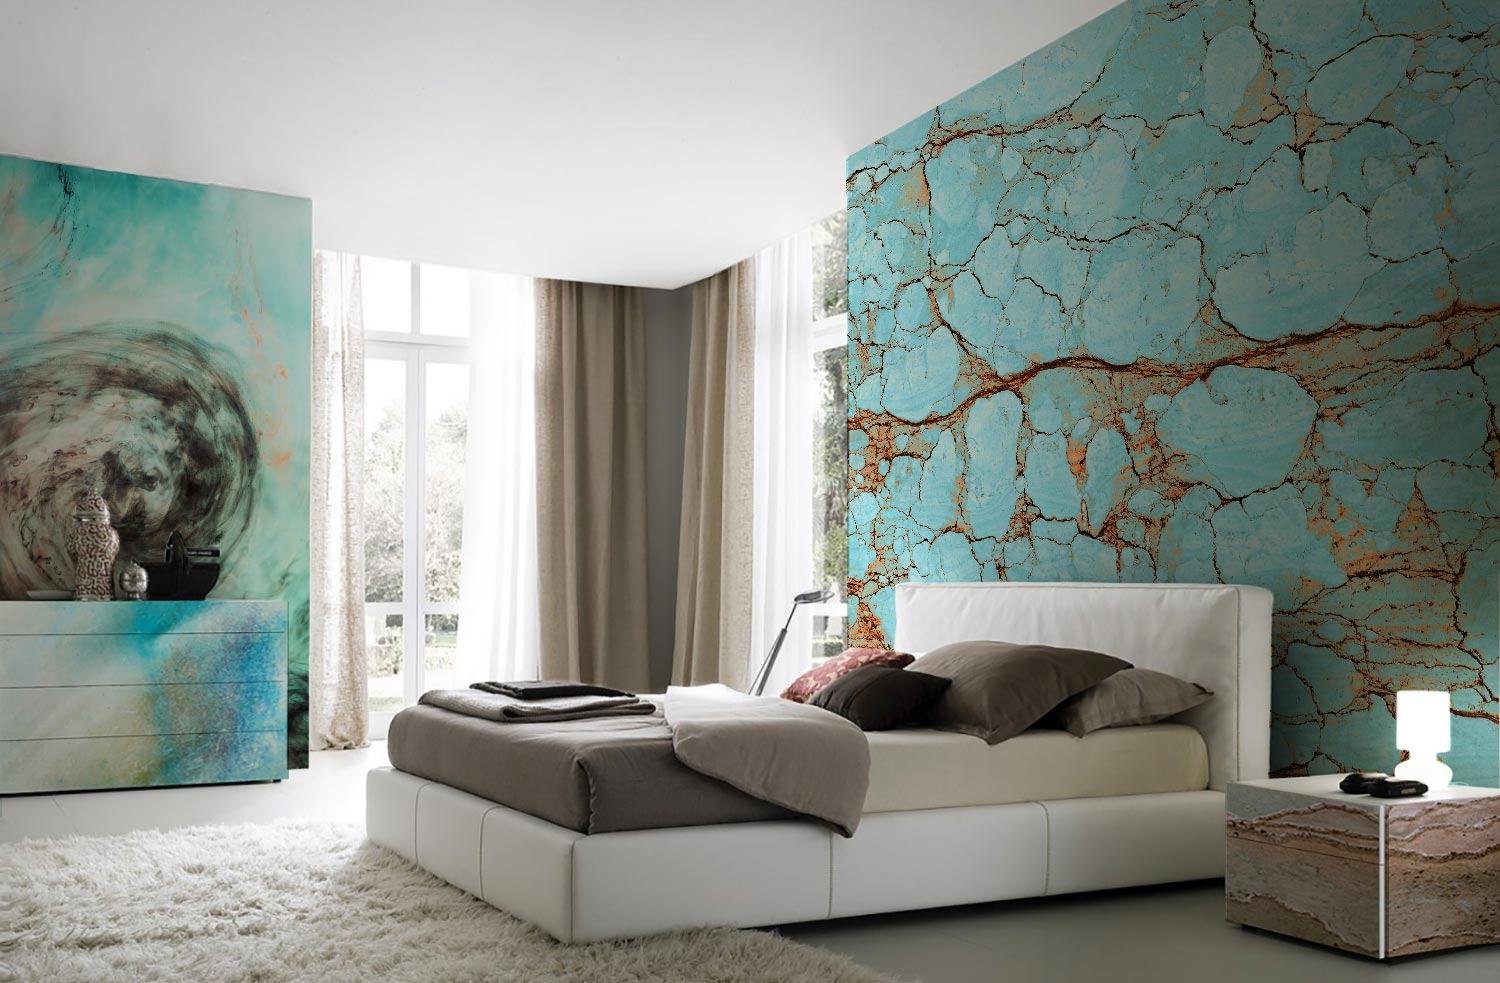 Modern bedroom with turquoise interior decor